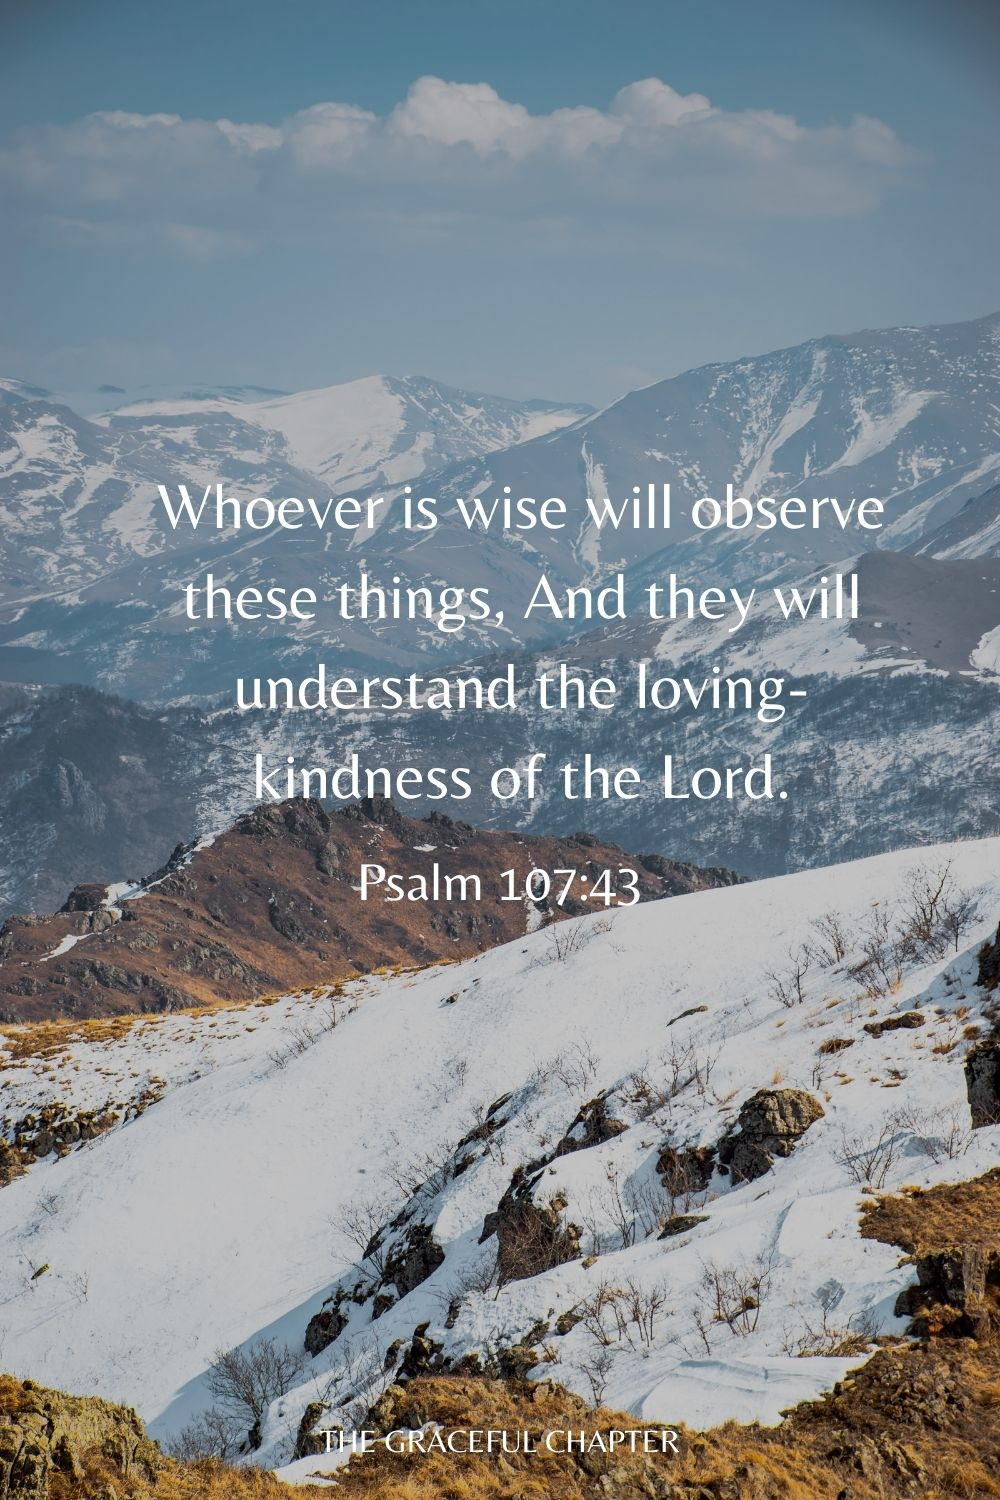 Whoever is wise will observe these things, And they will understand the loving-kindness of the Lord. Psalm 107:43